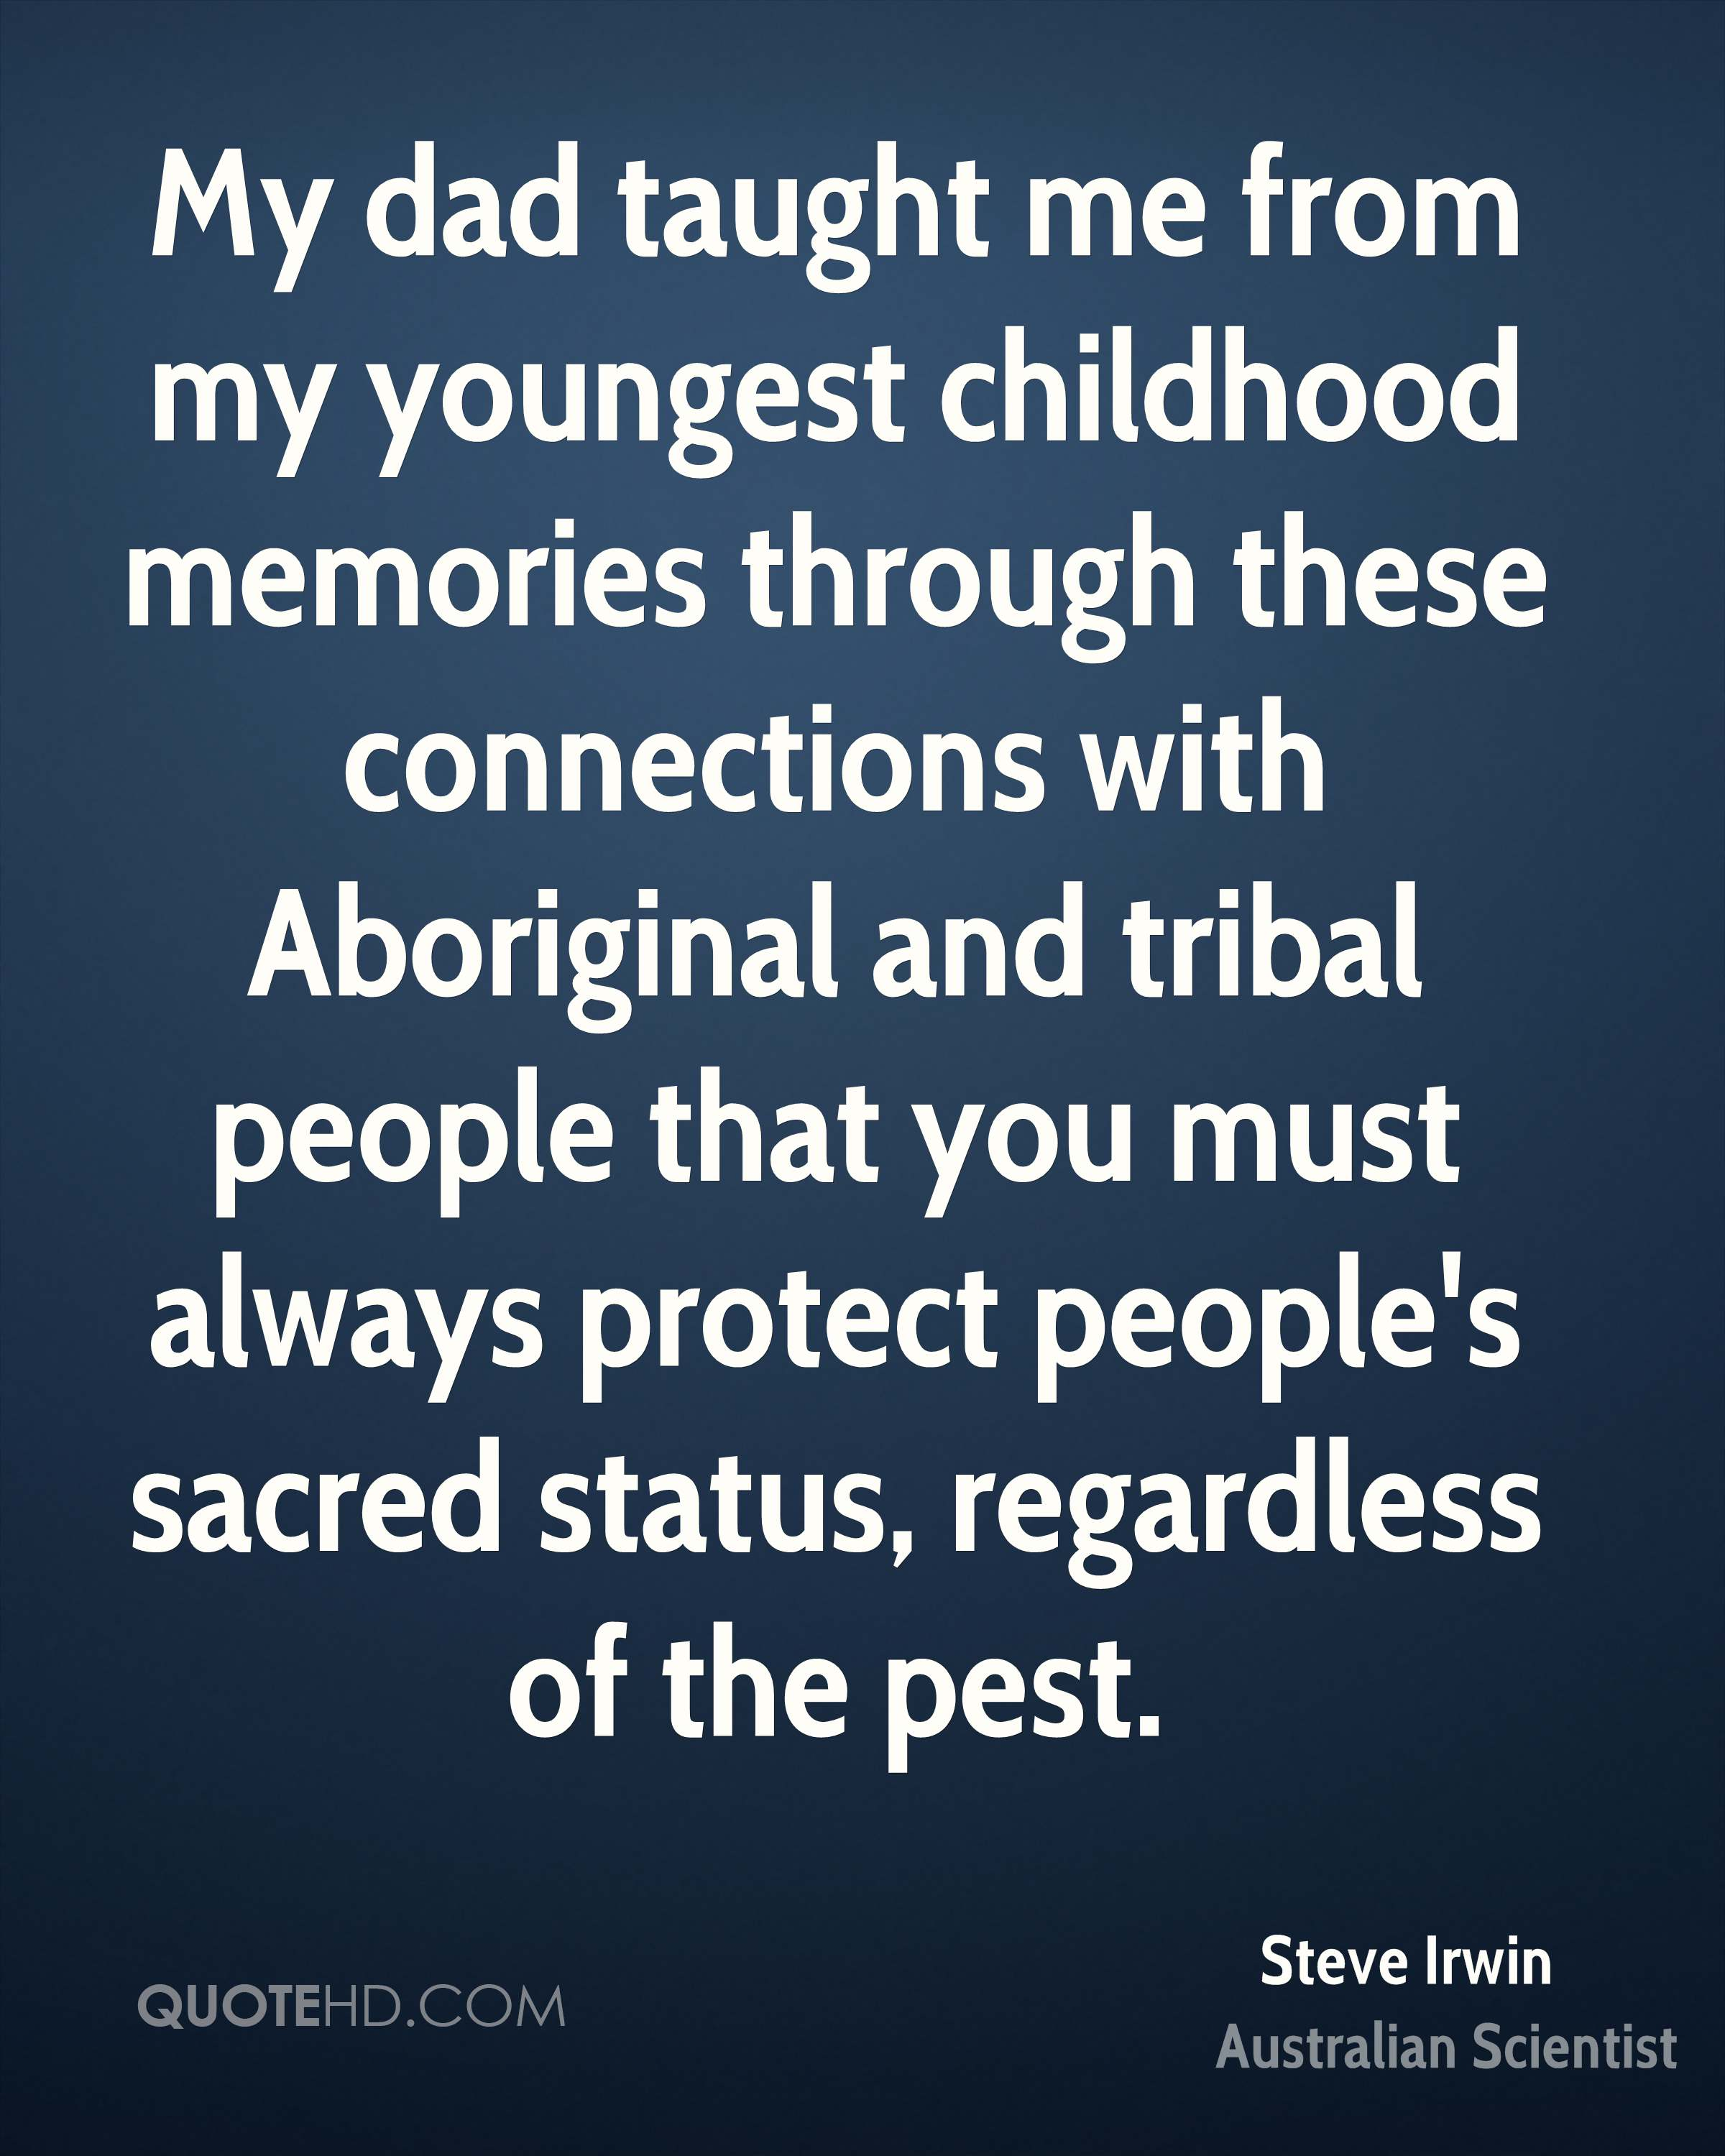 My dad taught me from my youngest childhood memories through these connections with Aboriginal and tribal people that you must always protect people's sacred status, regardless of the pest.